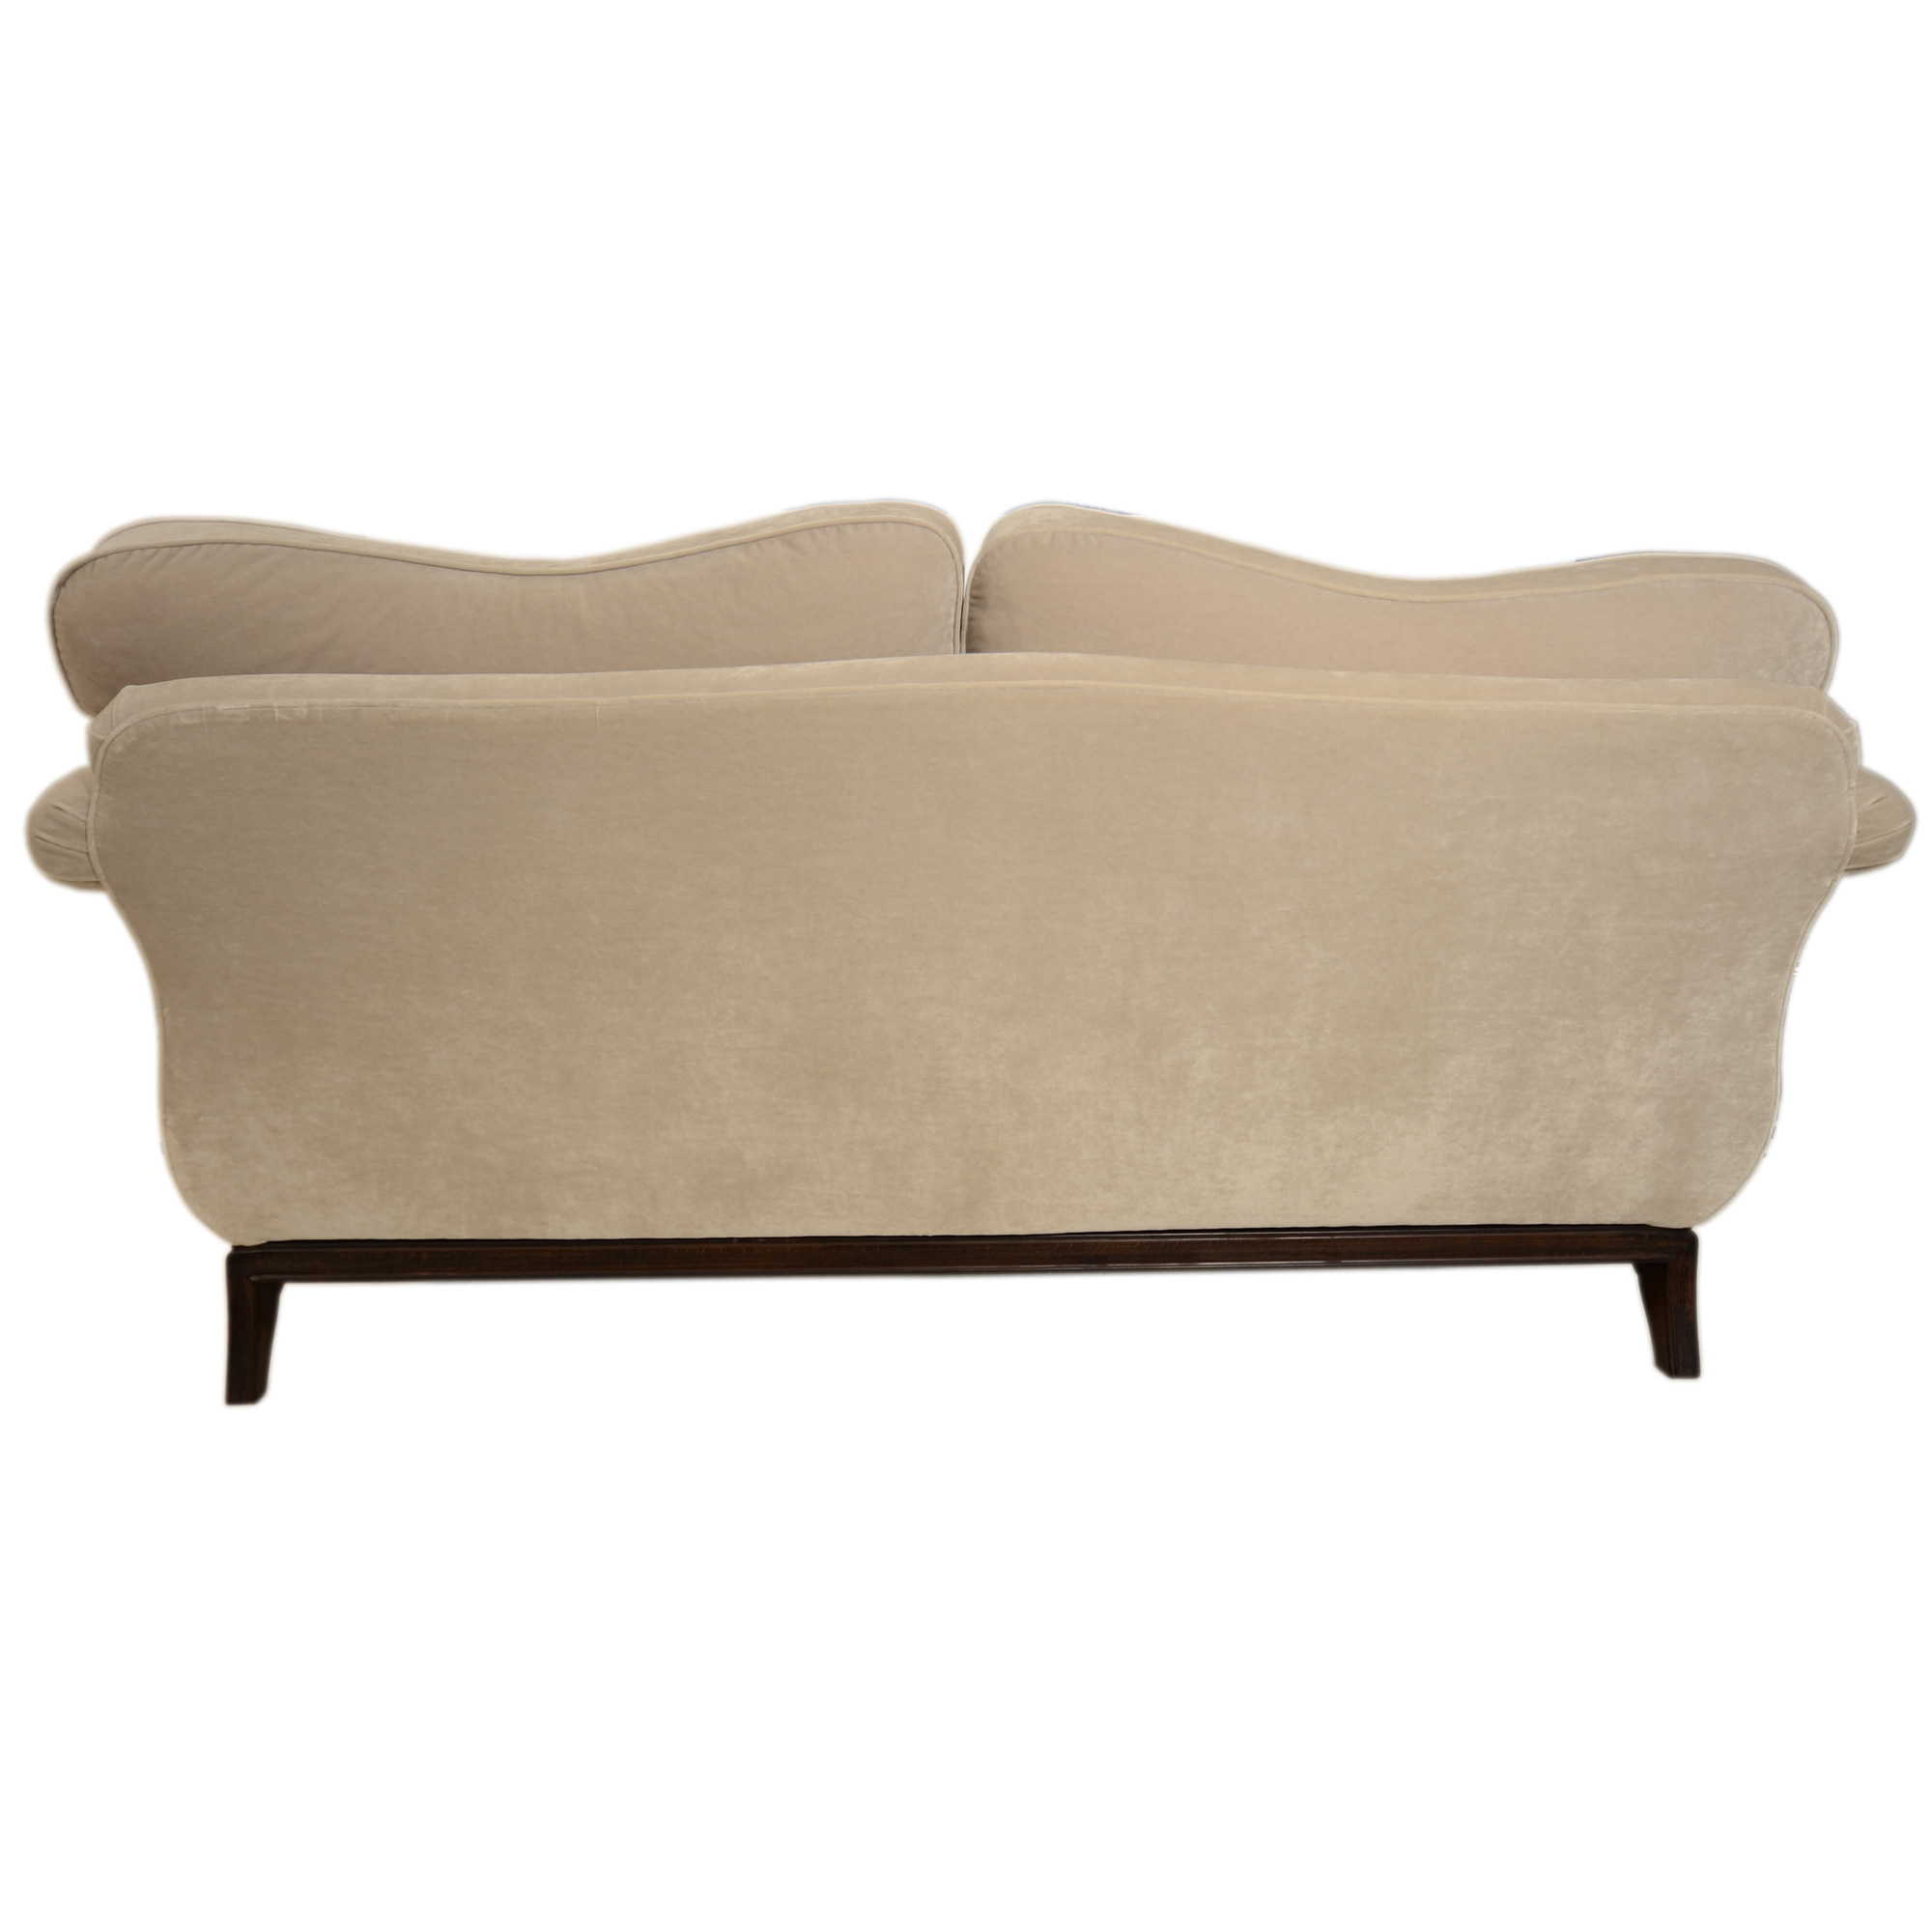 back view of camilla sofa on white background